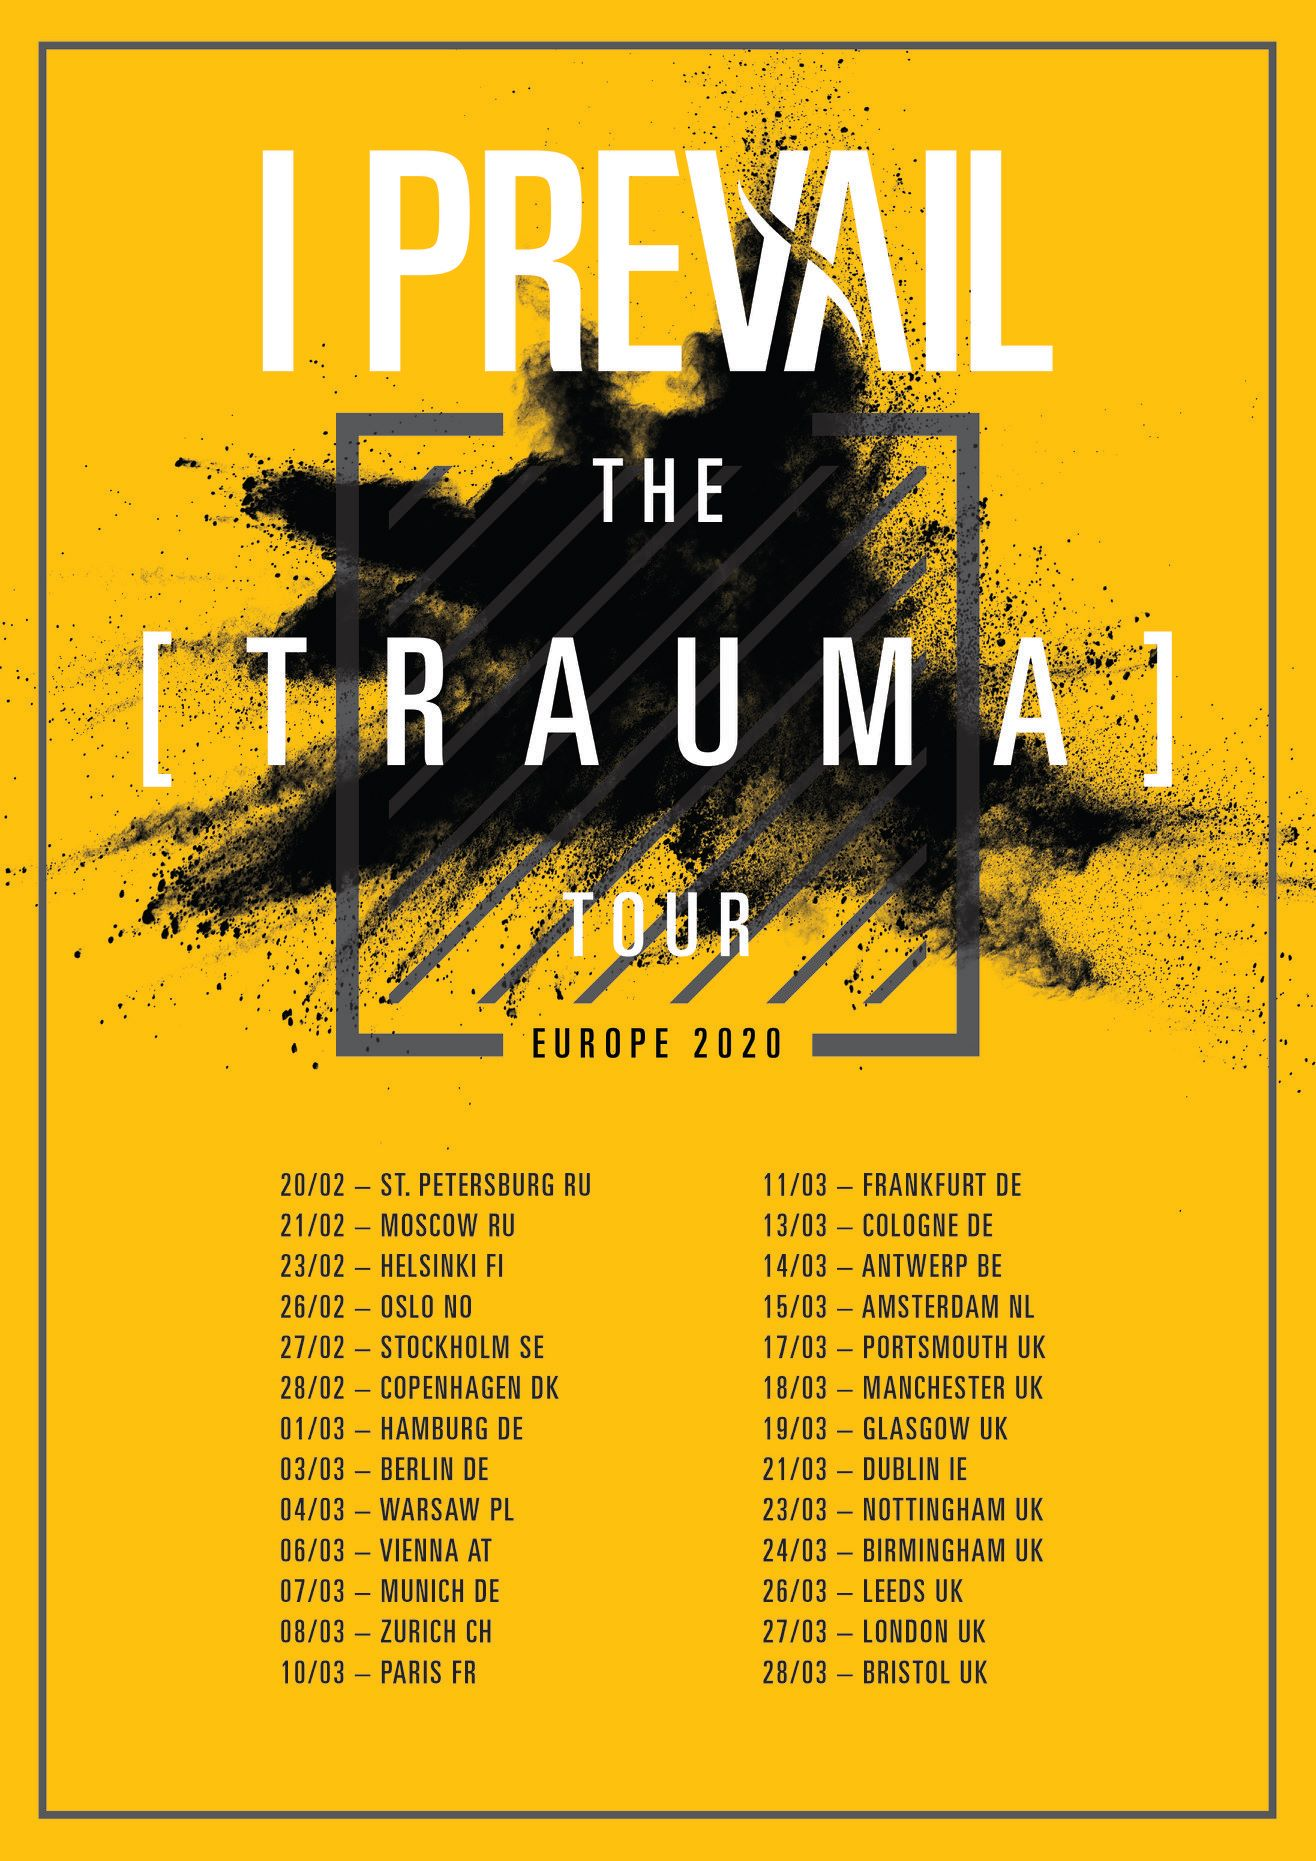 I Prevail Trauma Tour 2020